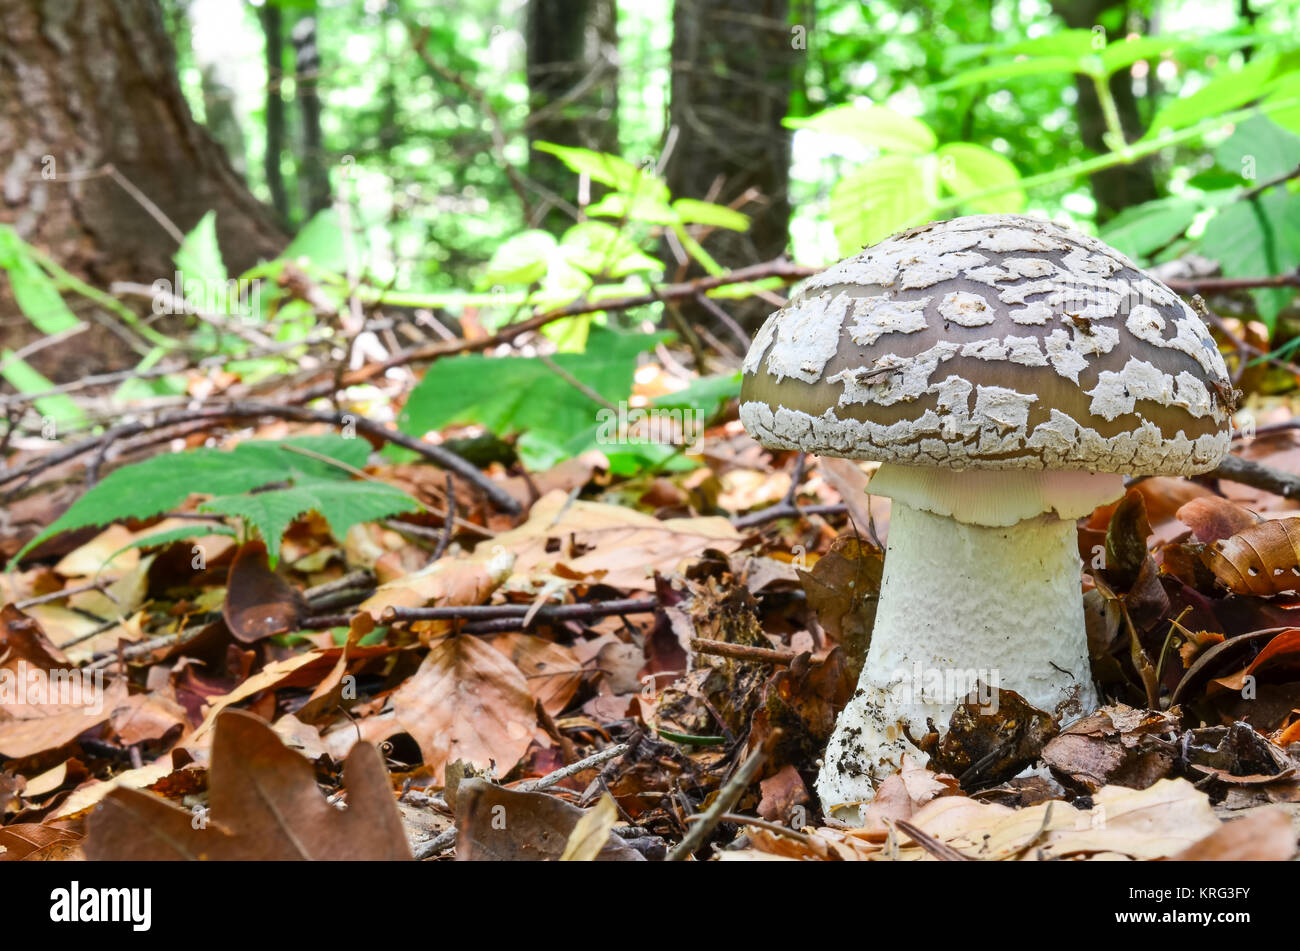 Grey Spotted Amanita, Amanita spissa or A.excelsa, edible wild mushroom, but very similar to dangerously poisonous - Stock Image